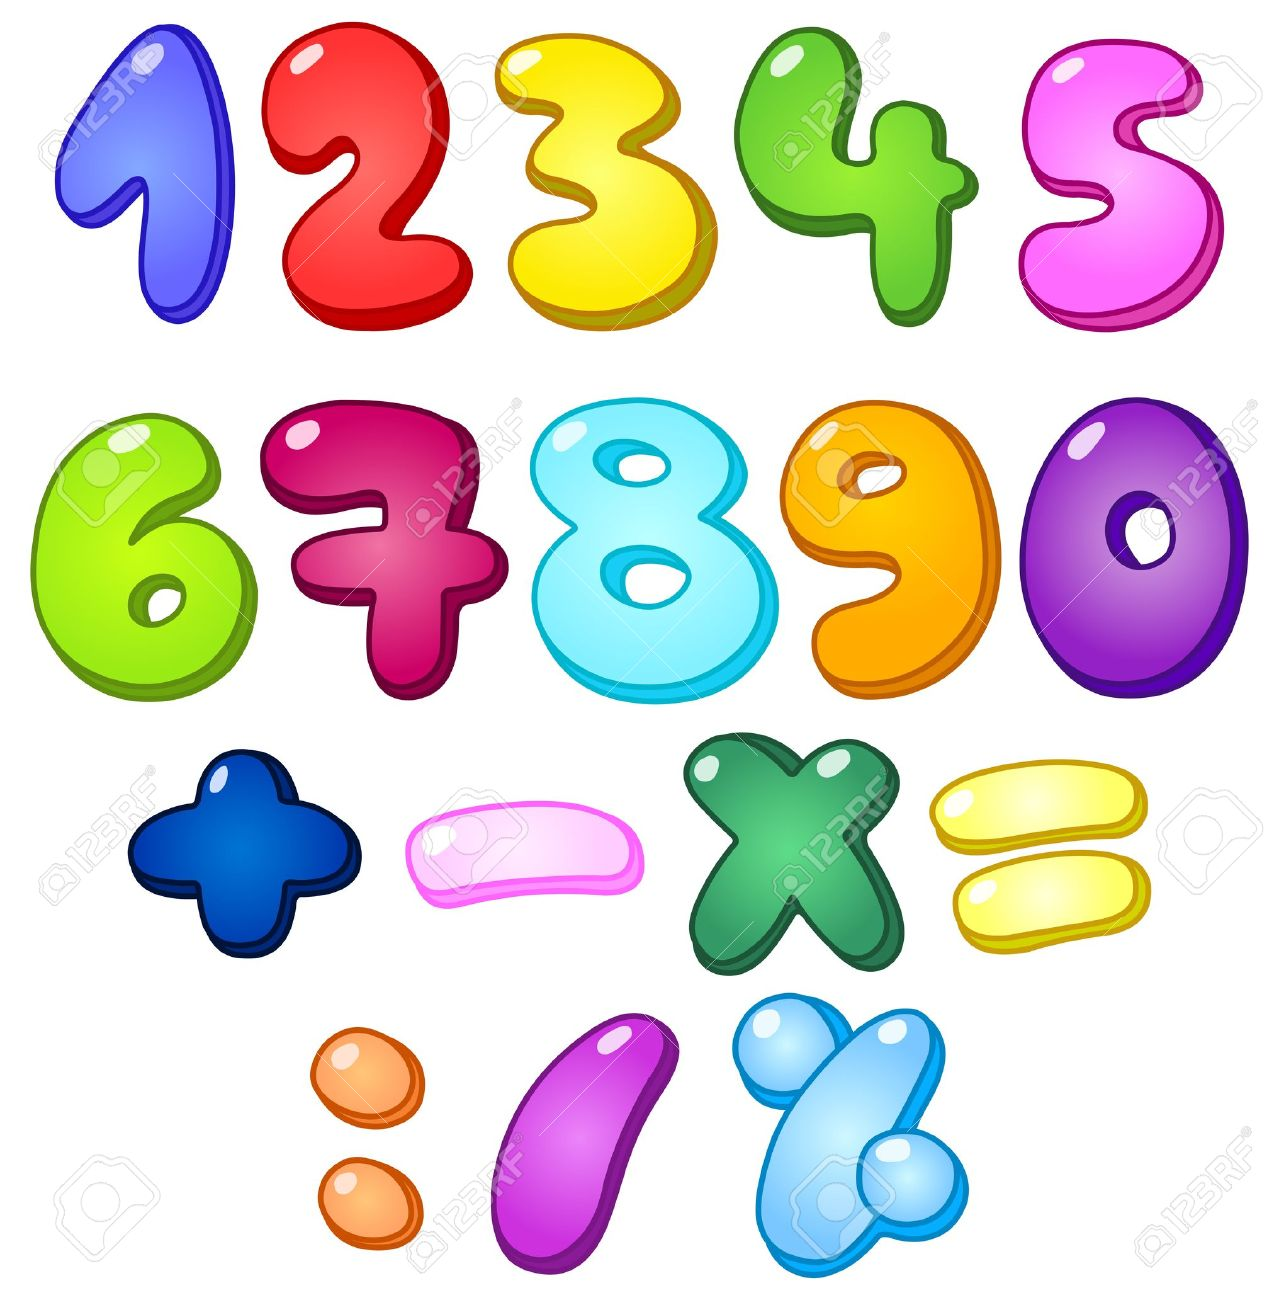 3d bubble shaped numbers and math signs set royalty free cliparts 3d bubble shaped numbers and math signs set stock vector 16582470 biocorpaavc